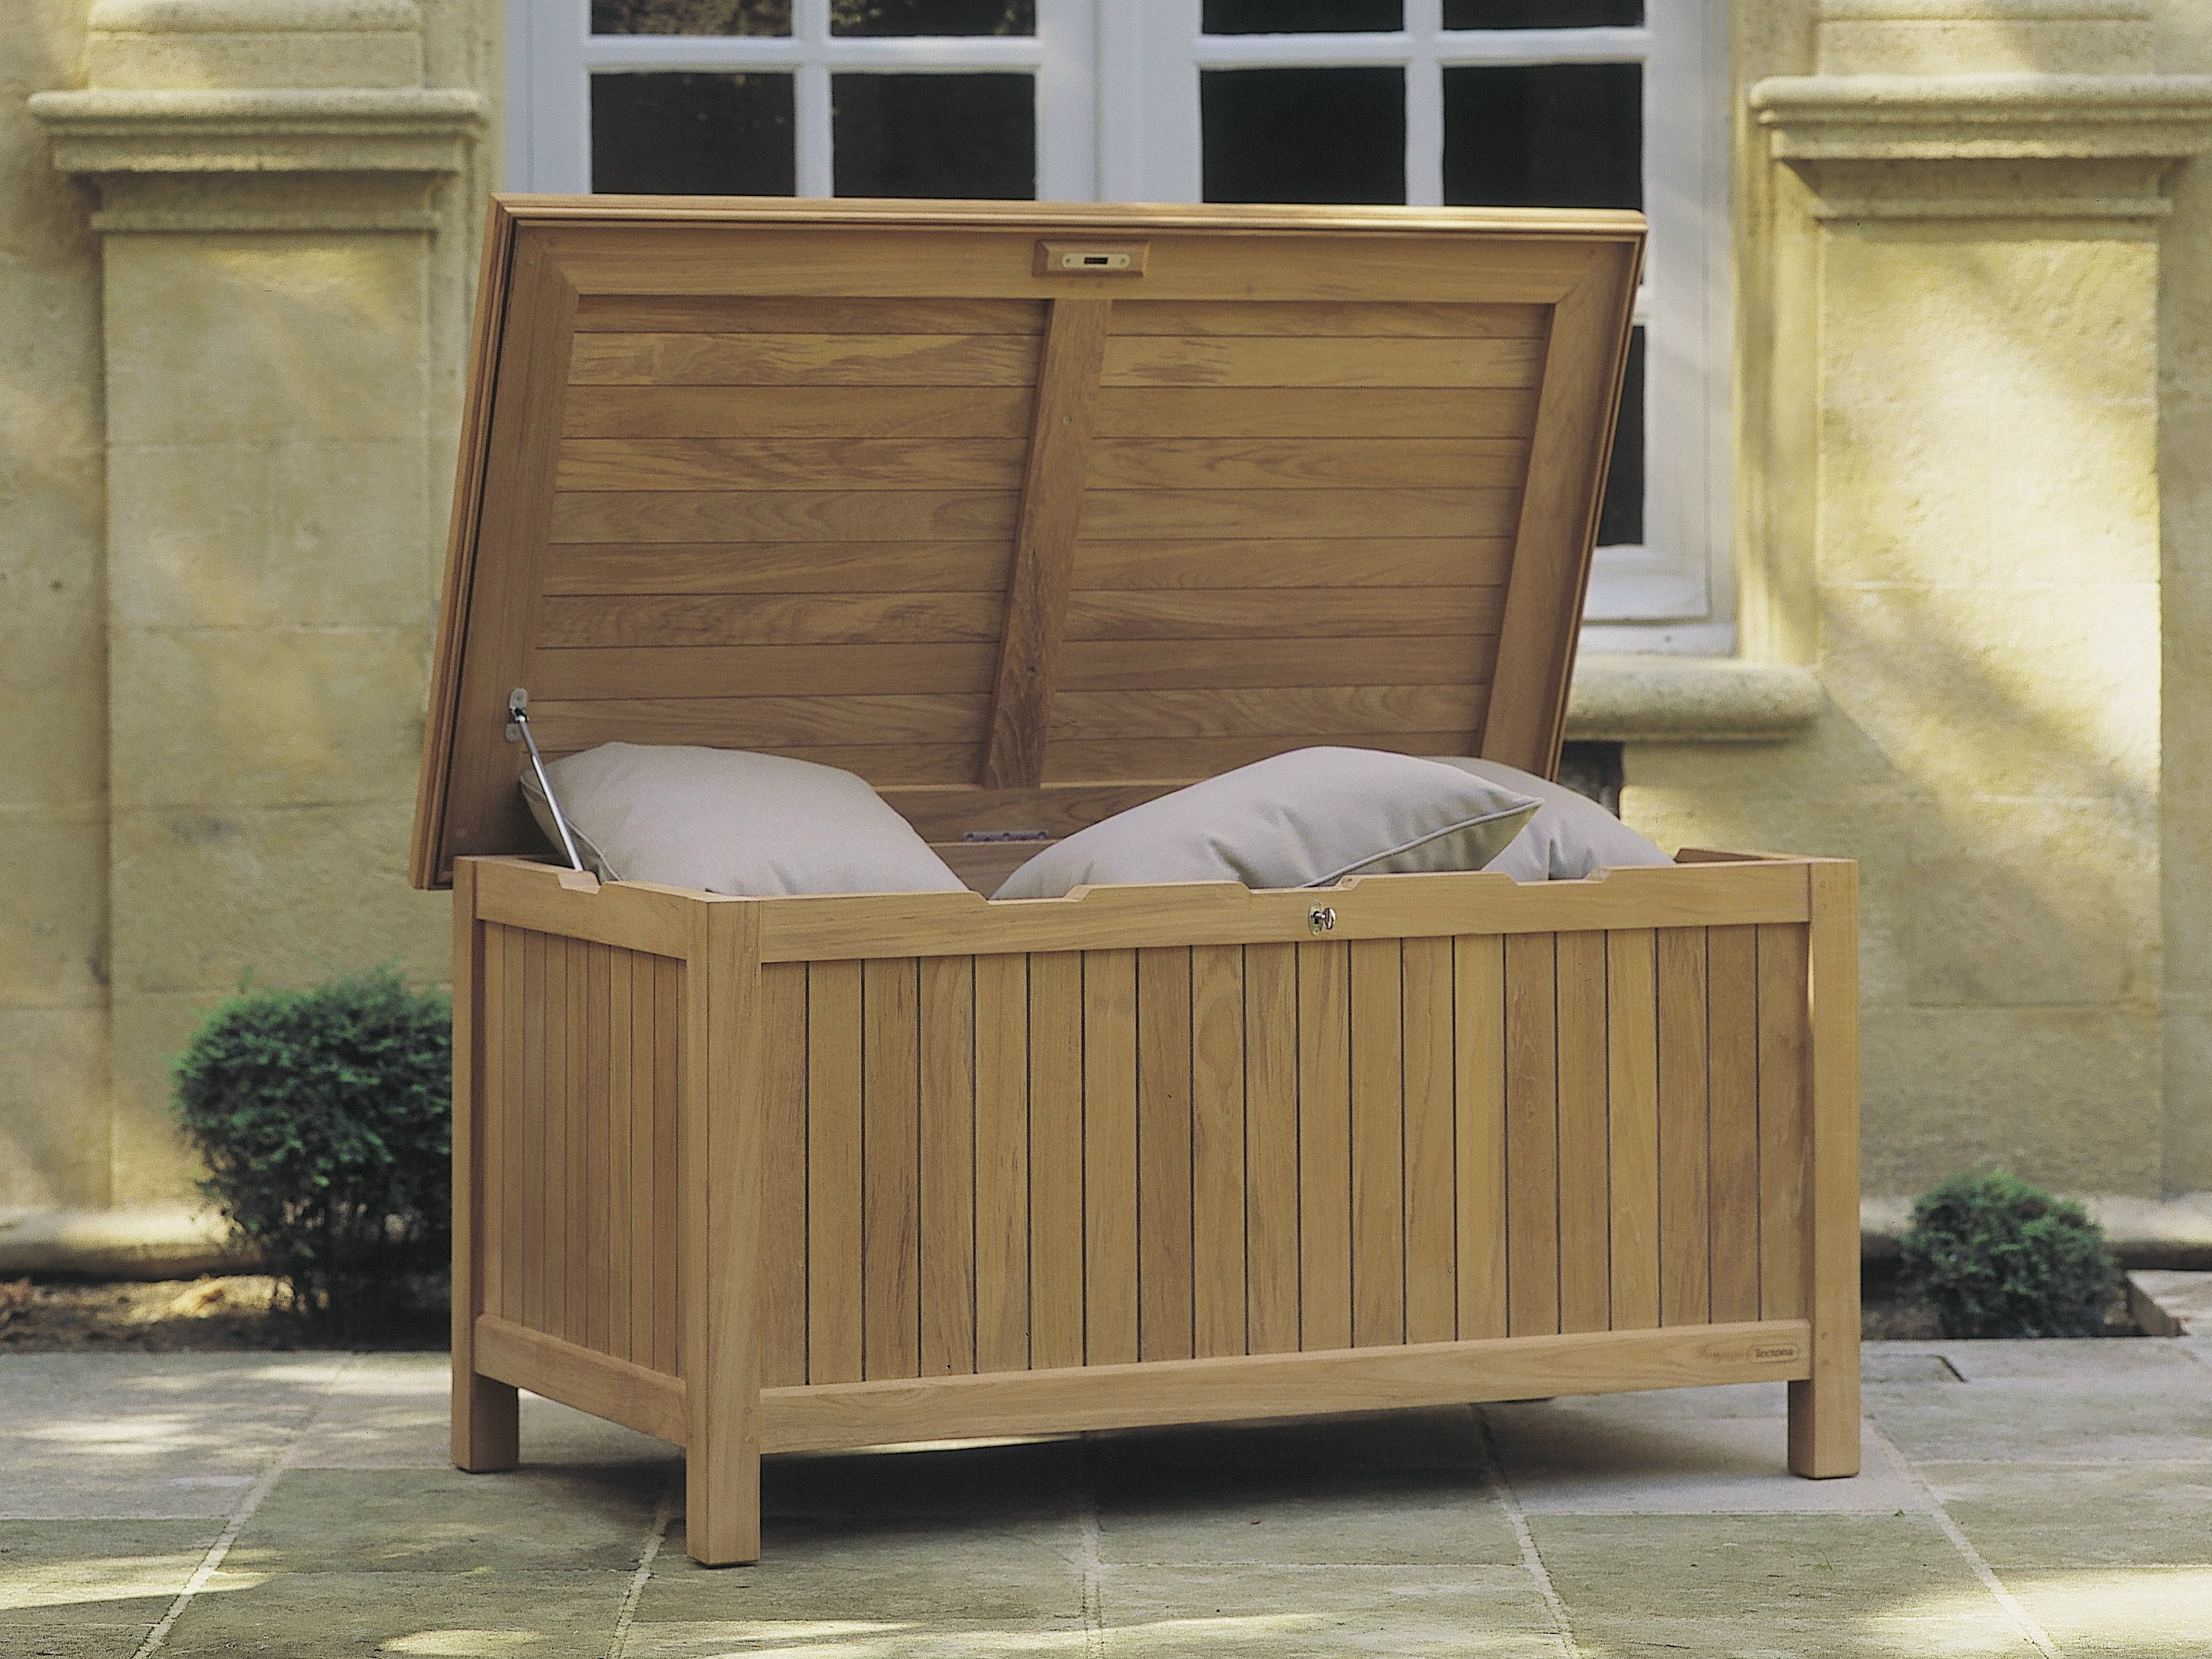 gartenschrank aus teakholz aladin by tectona. Black Bedroom Furniture Sets. Home Design Ideas